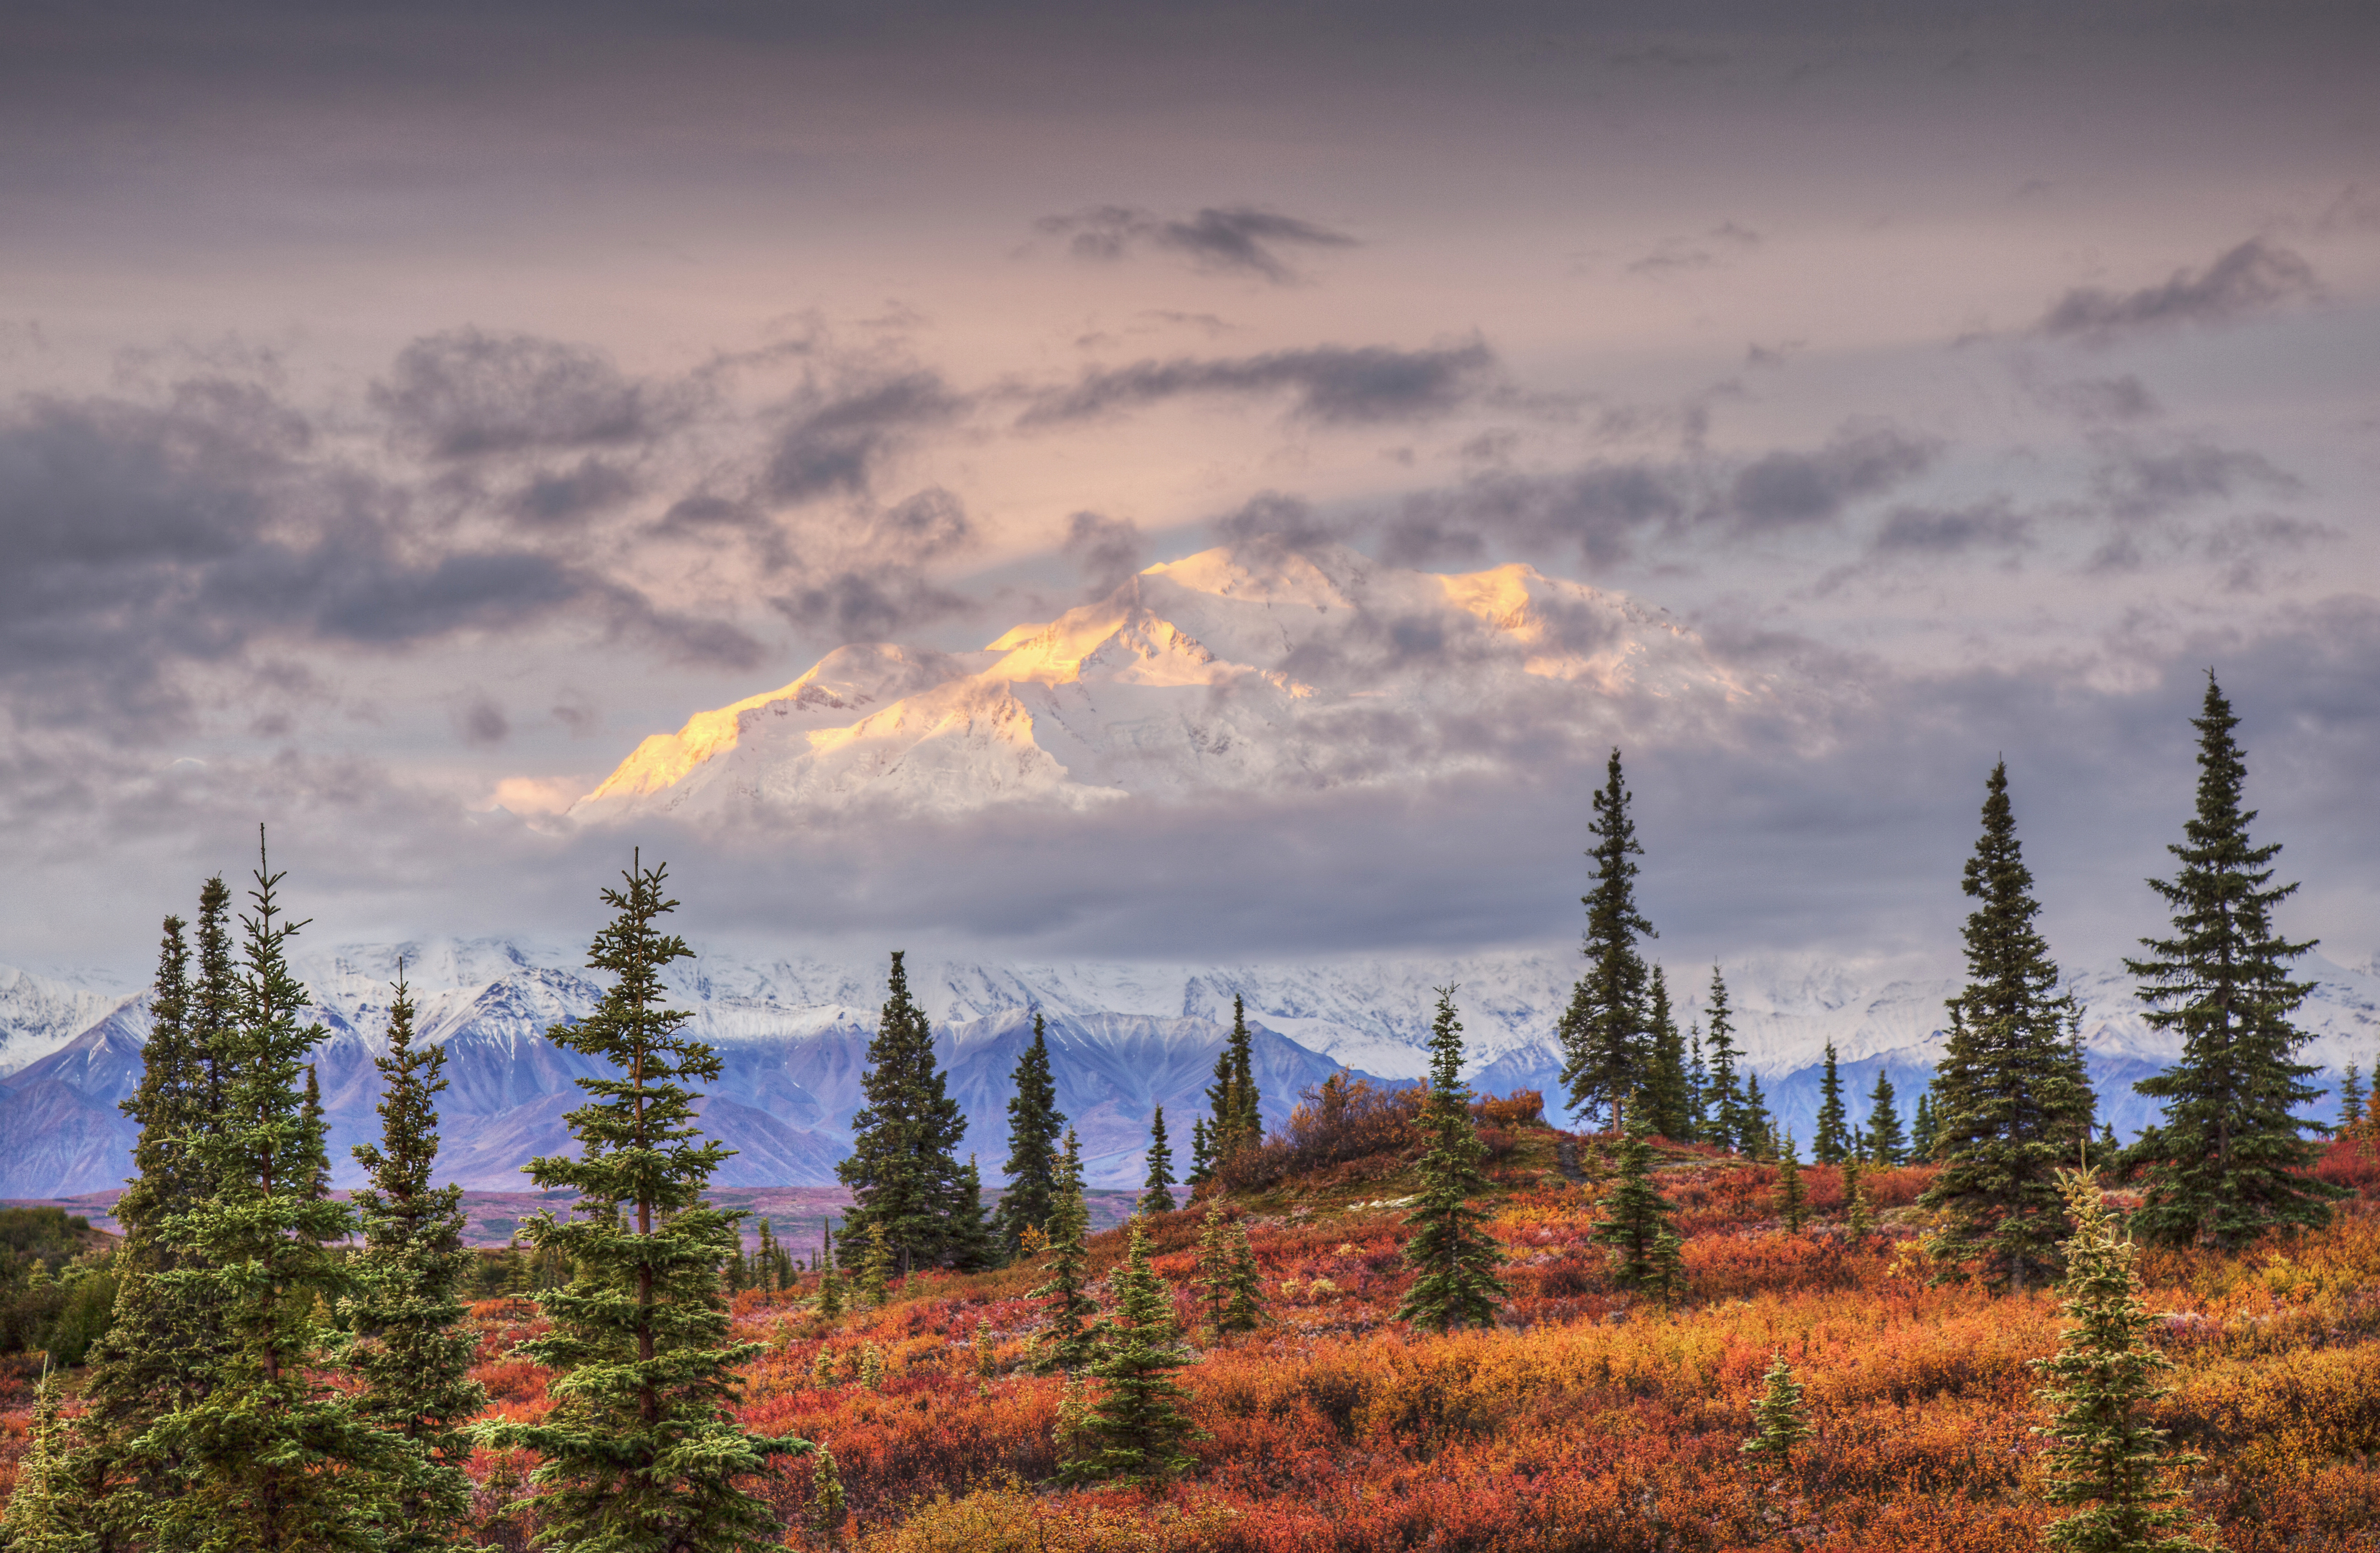 North face of Mt. Denali and fall colored tundra with early morning light filtered by a thin layer of clouds over the mountain as seen from Wonder Lake campground, Denali National Park, Alaska. Fall.